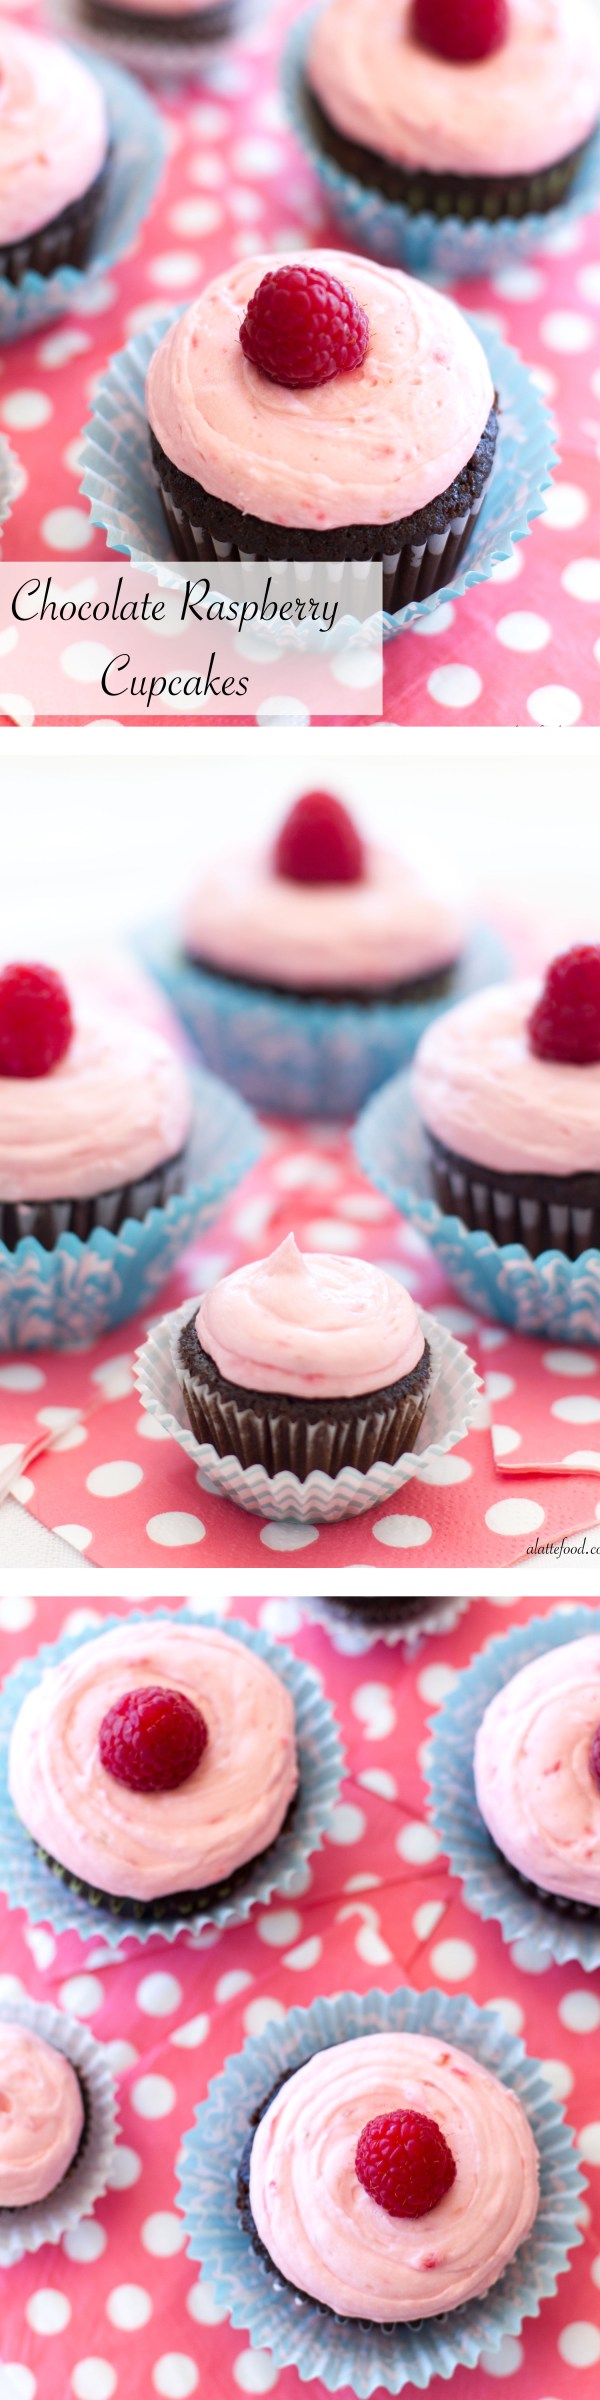 These rich chocolate cupcakes are filled with an easy chocolate mousse and topped with a fresh raspberry buttercream!   www.alattefood.com